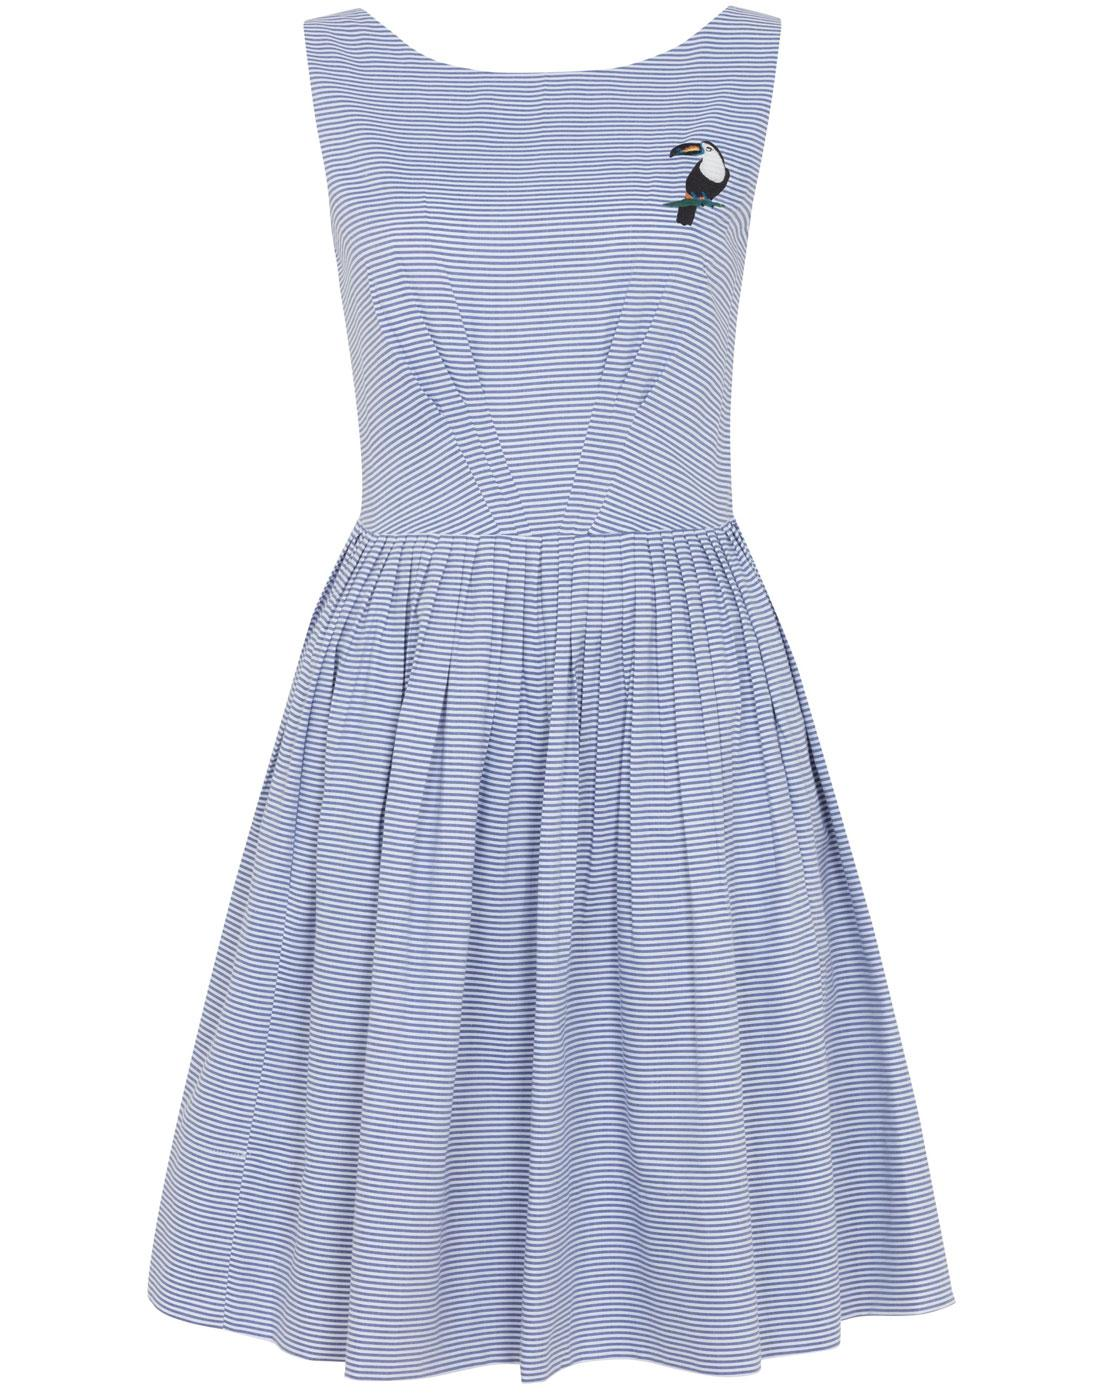 Abigail EMILY AND FIN Retro Striped Party Dress